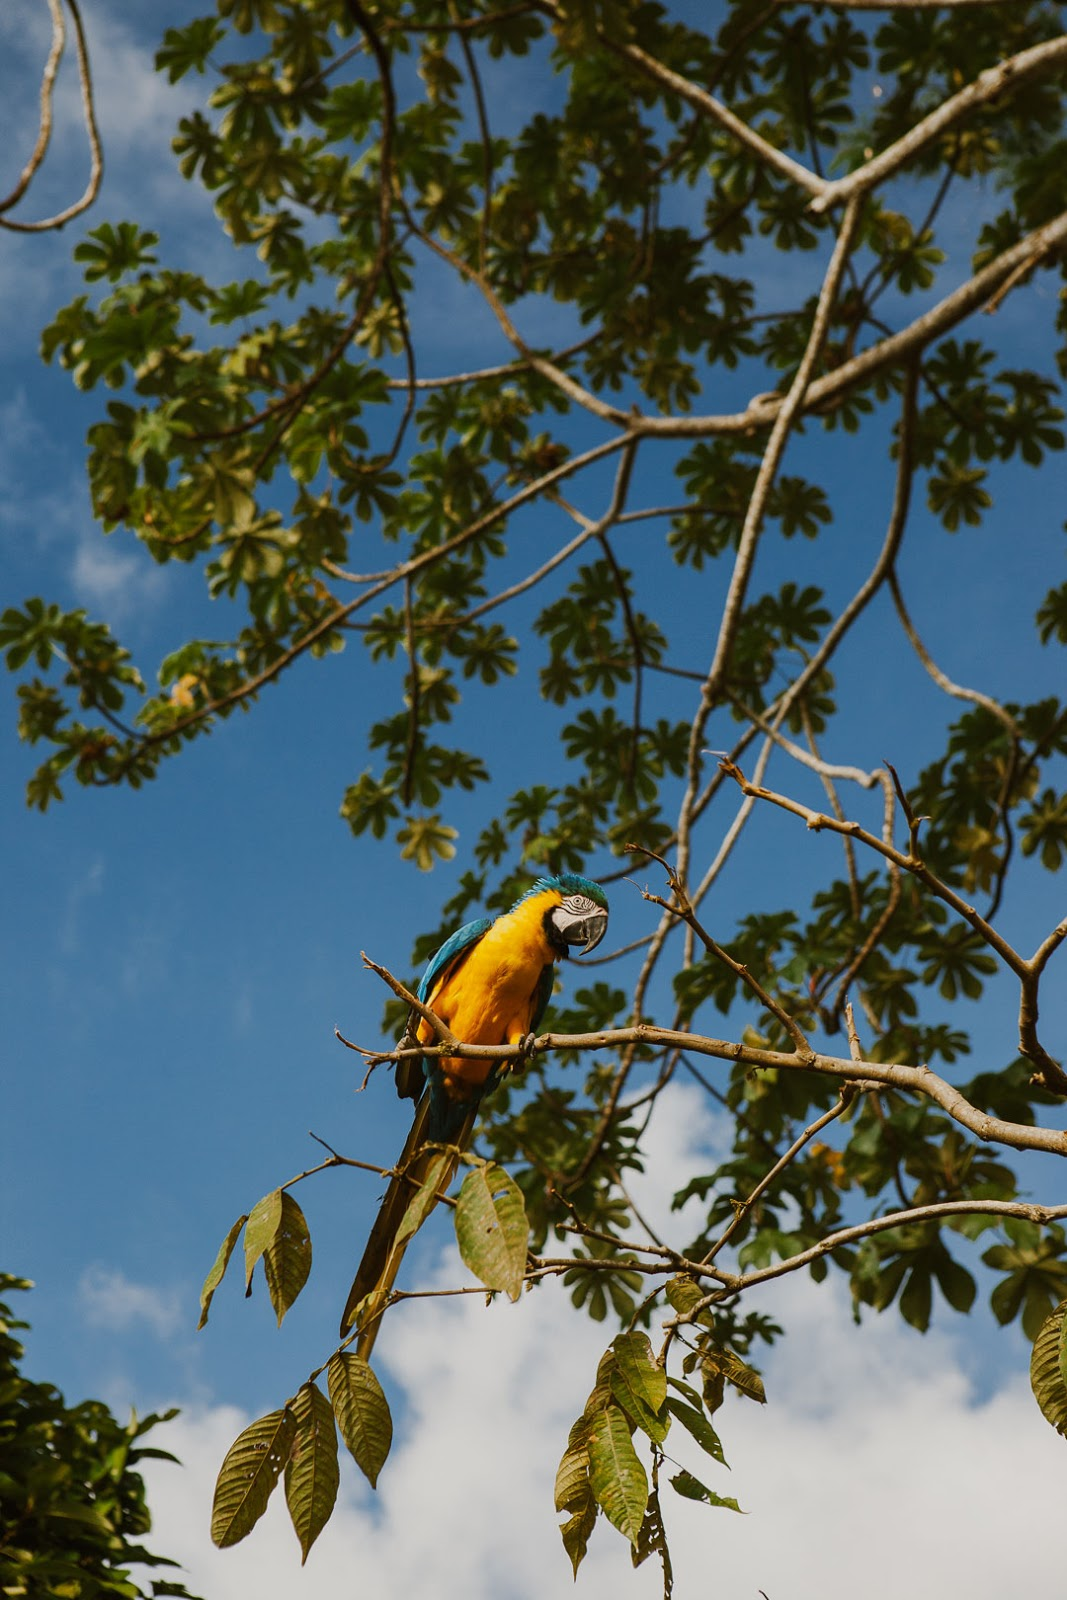 Blue and Yellow Macaw sits on a think branch on a tree in the Peruvian rainforest